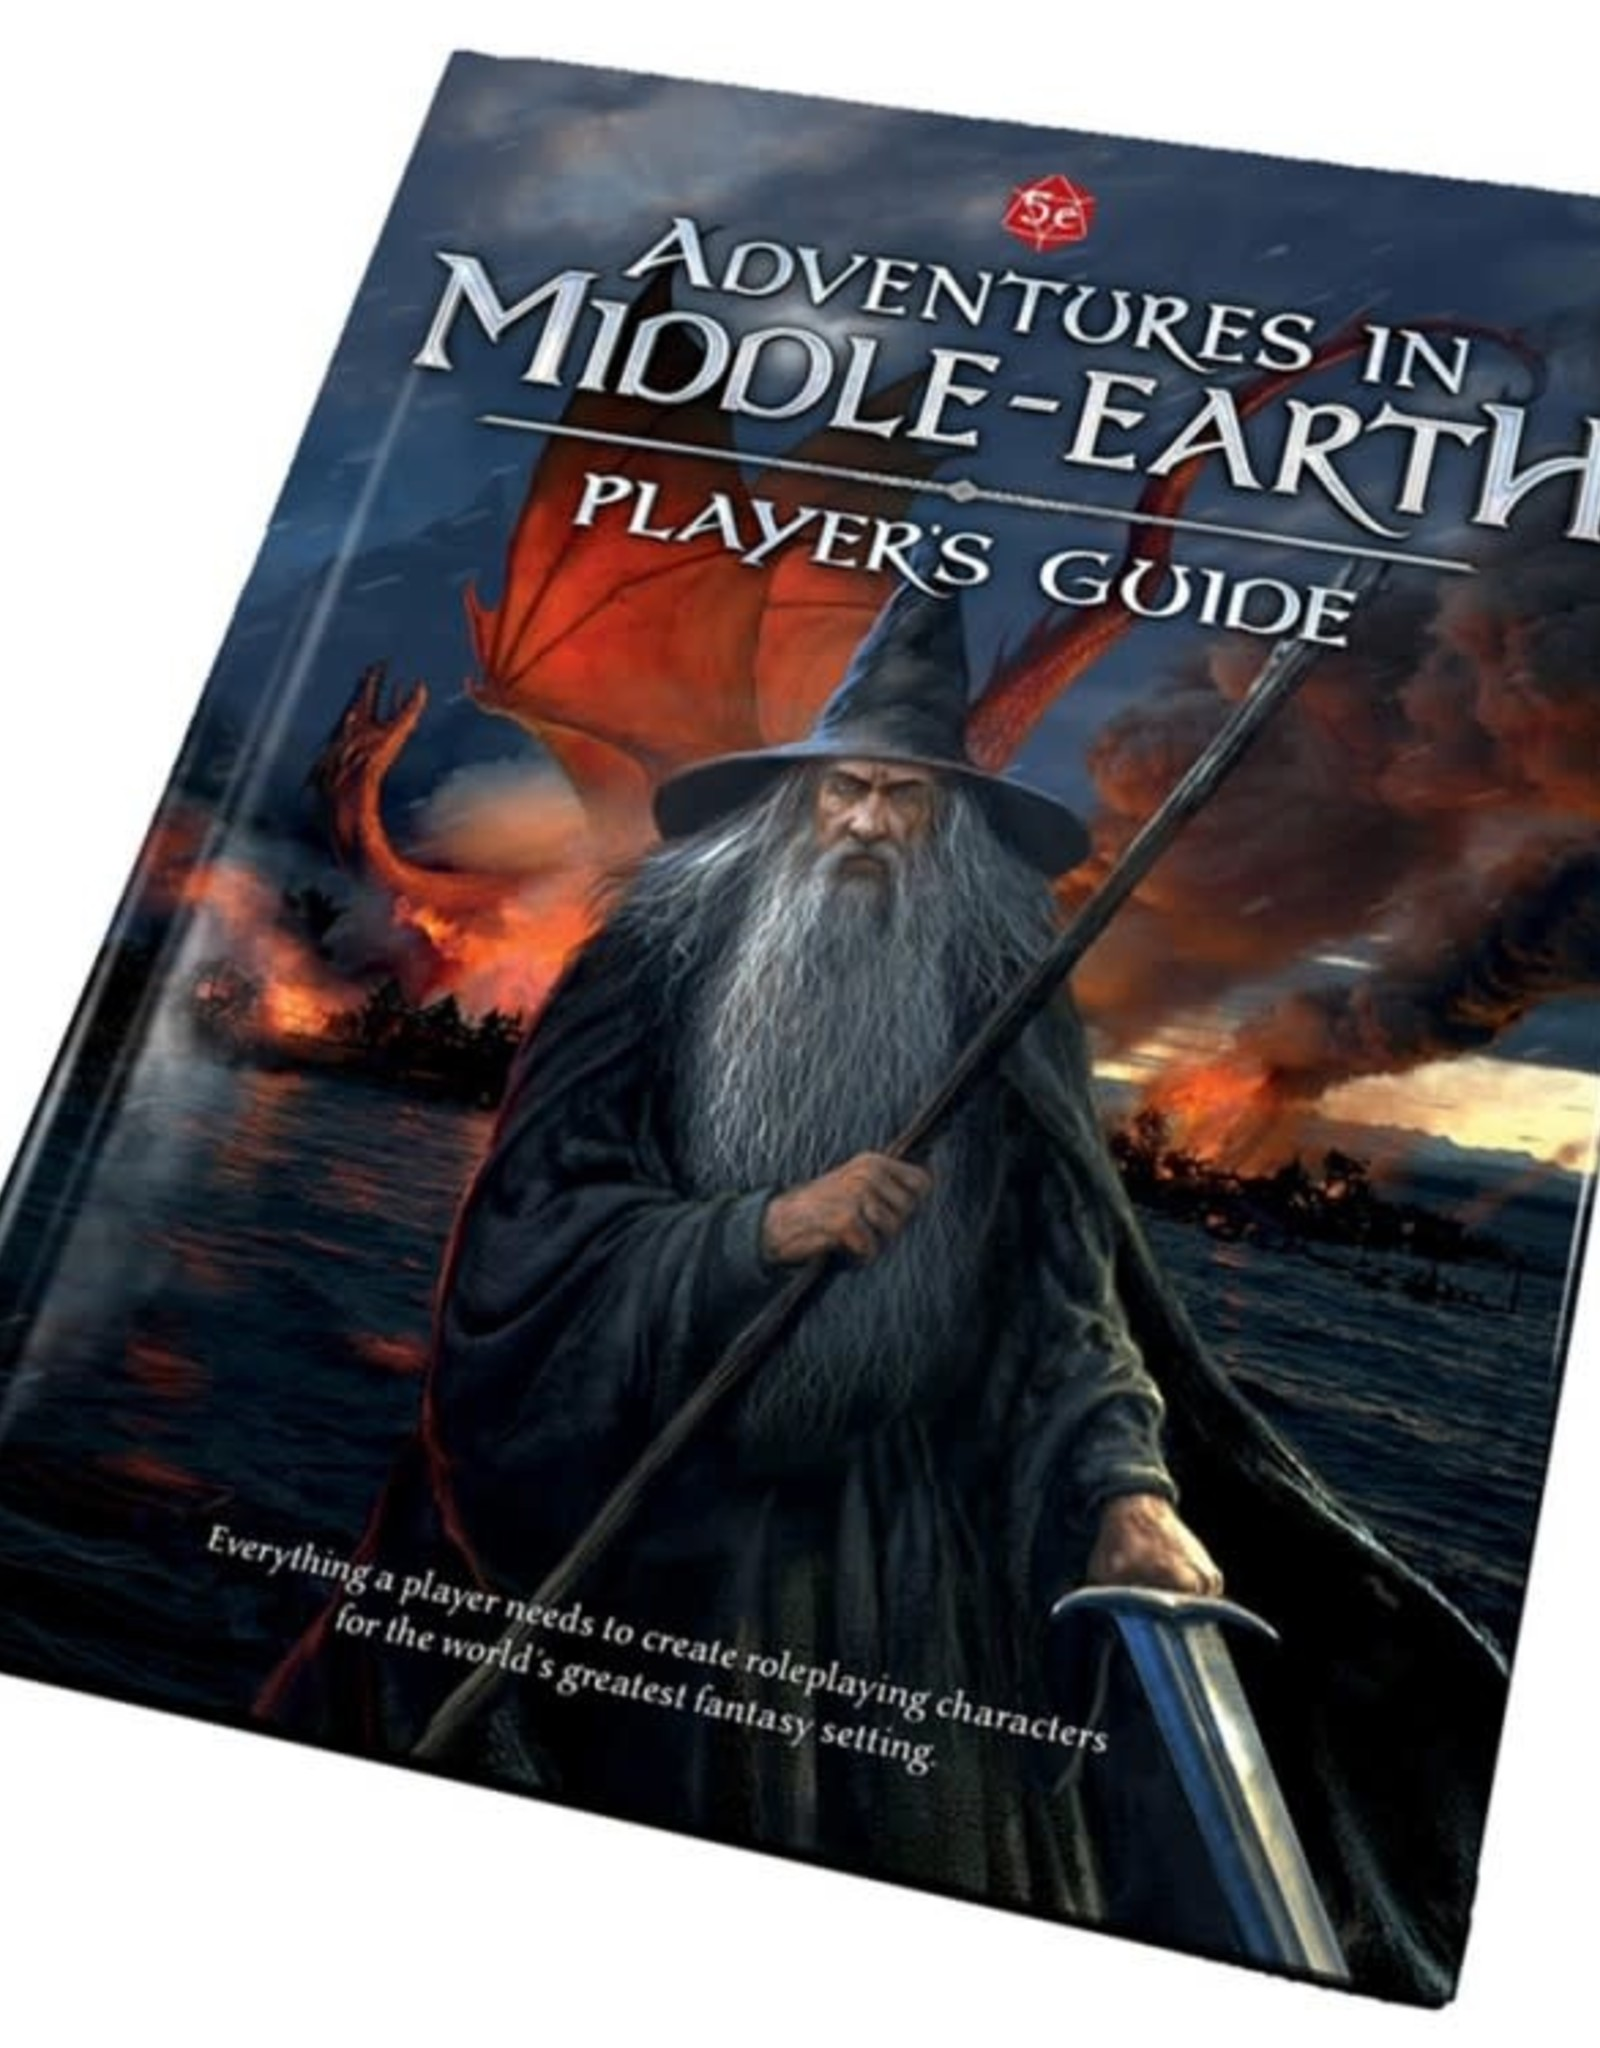 Cubicle 7 Adv in Middle Earth Player's Guide